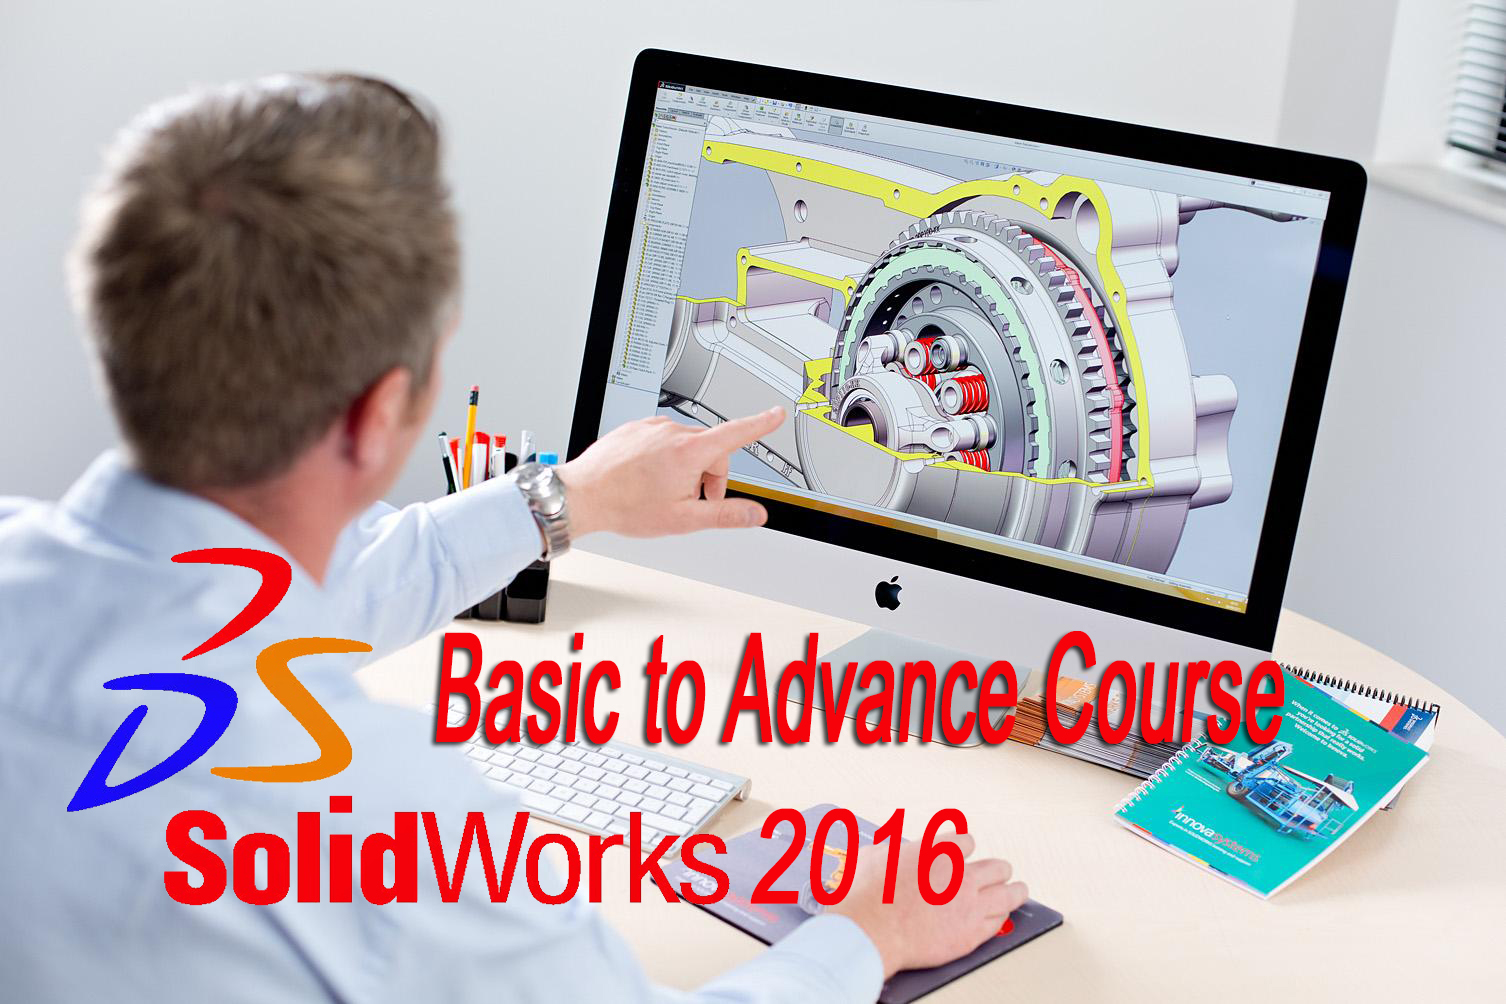 Solidworks 2016 Advance Online Couse in English